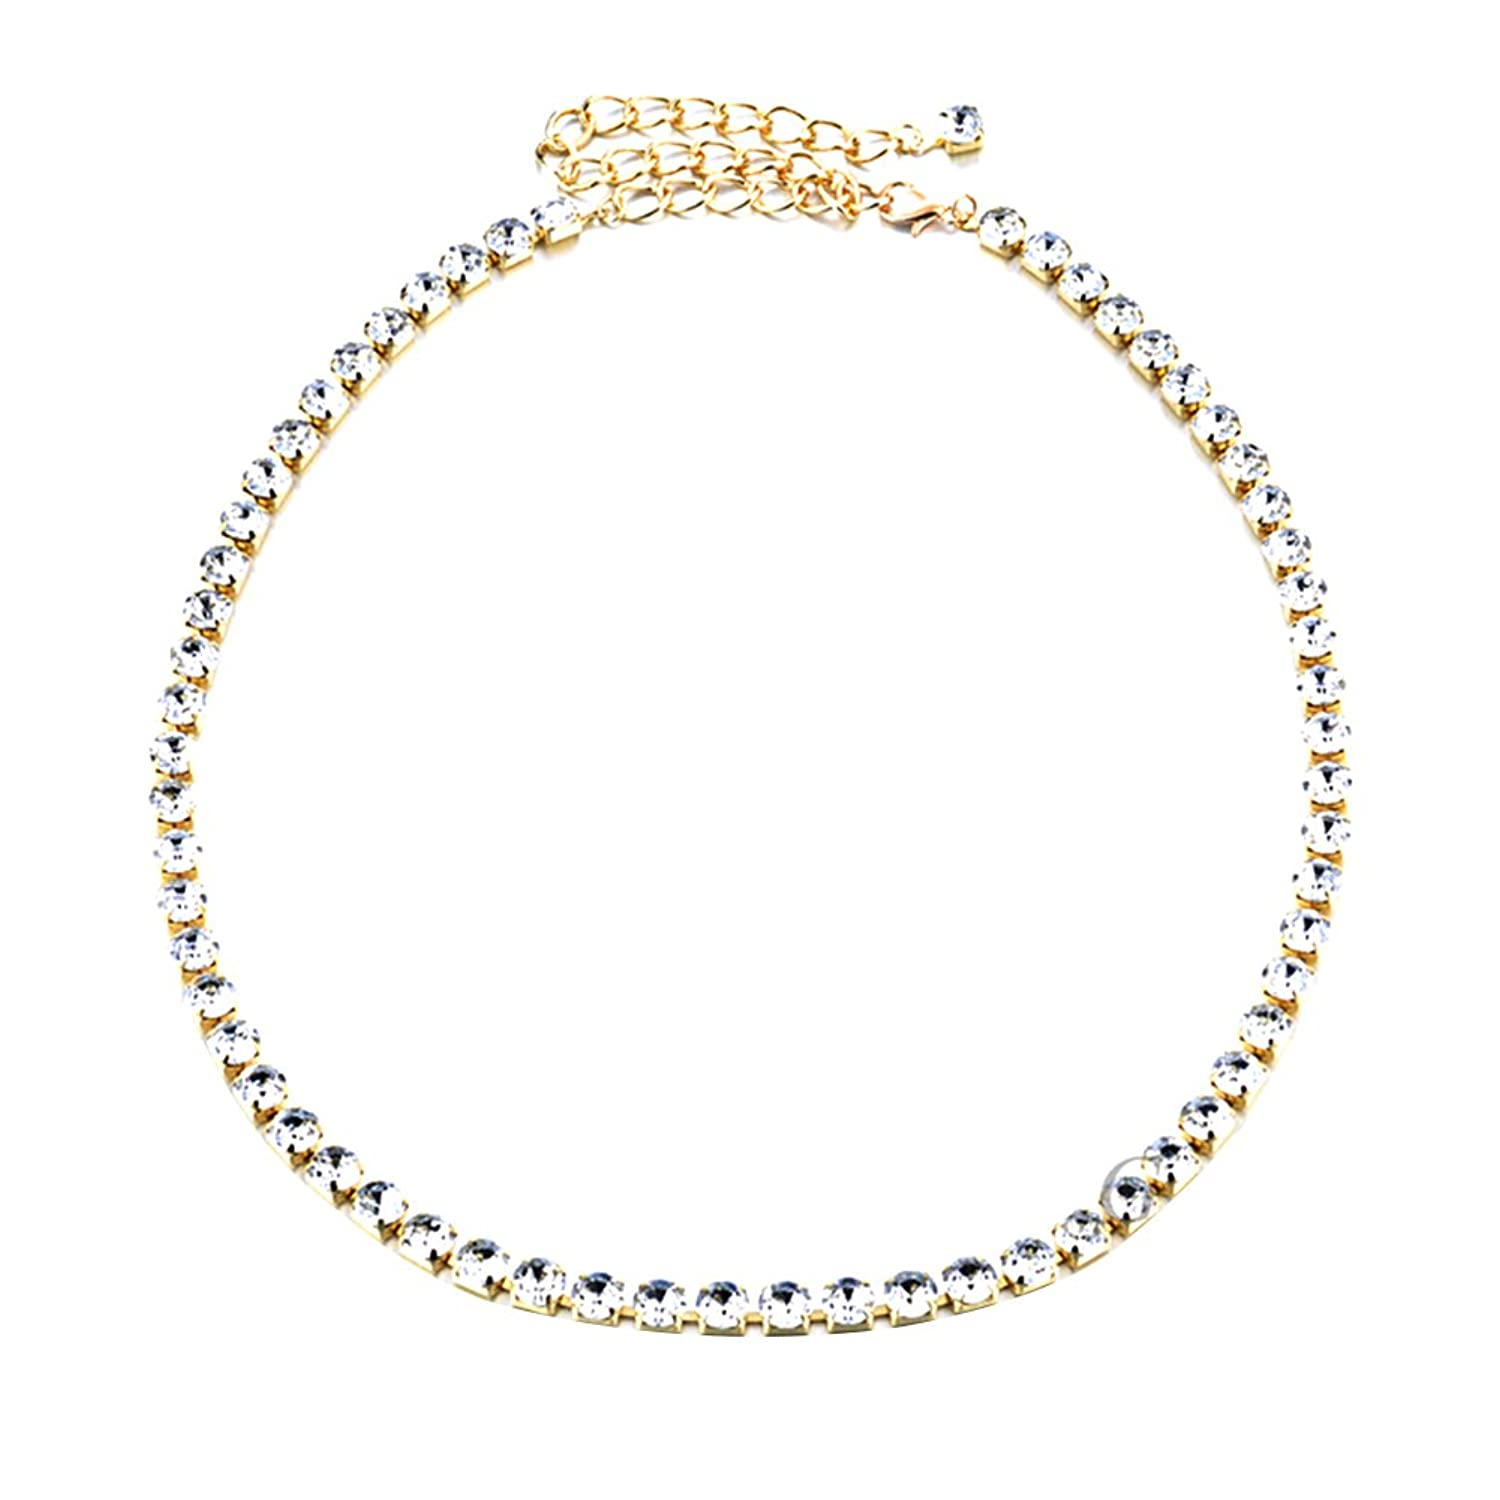 Sitong women's diamond inlaid metal waist chain(2 colors)